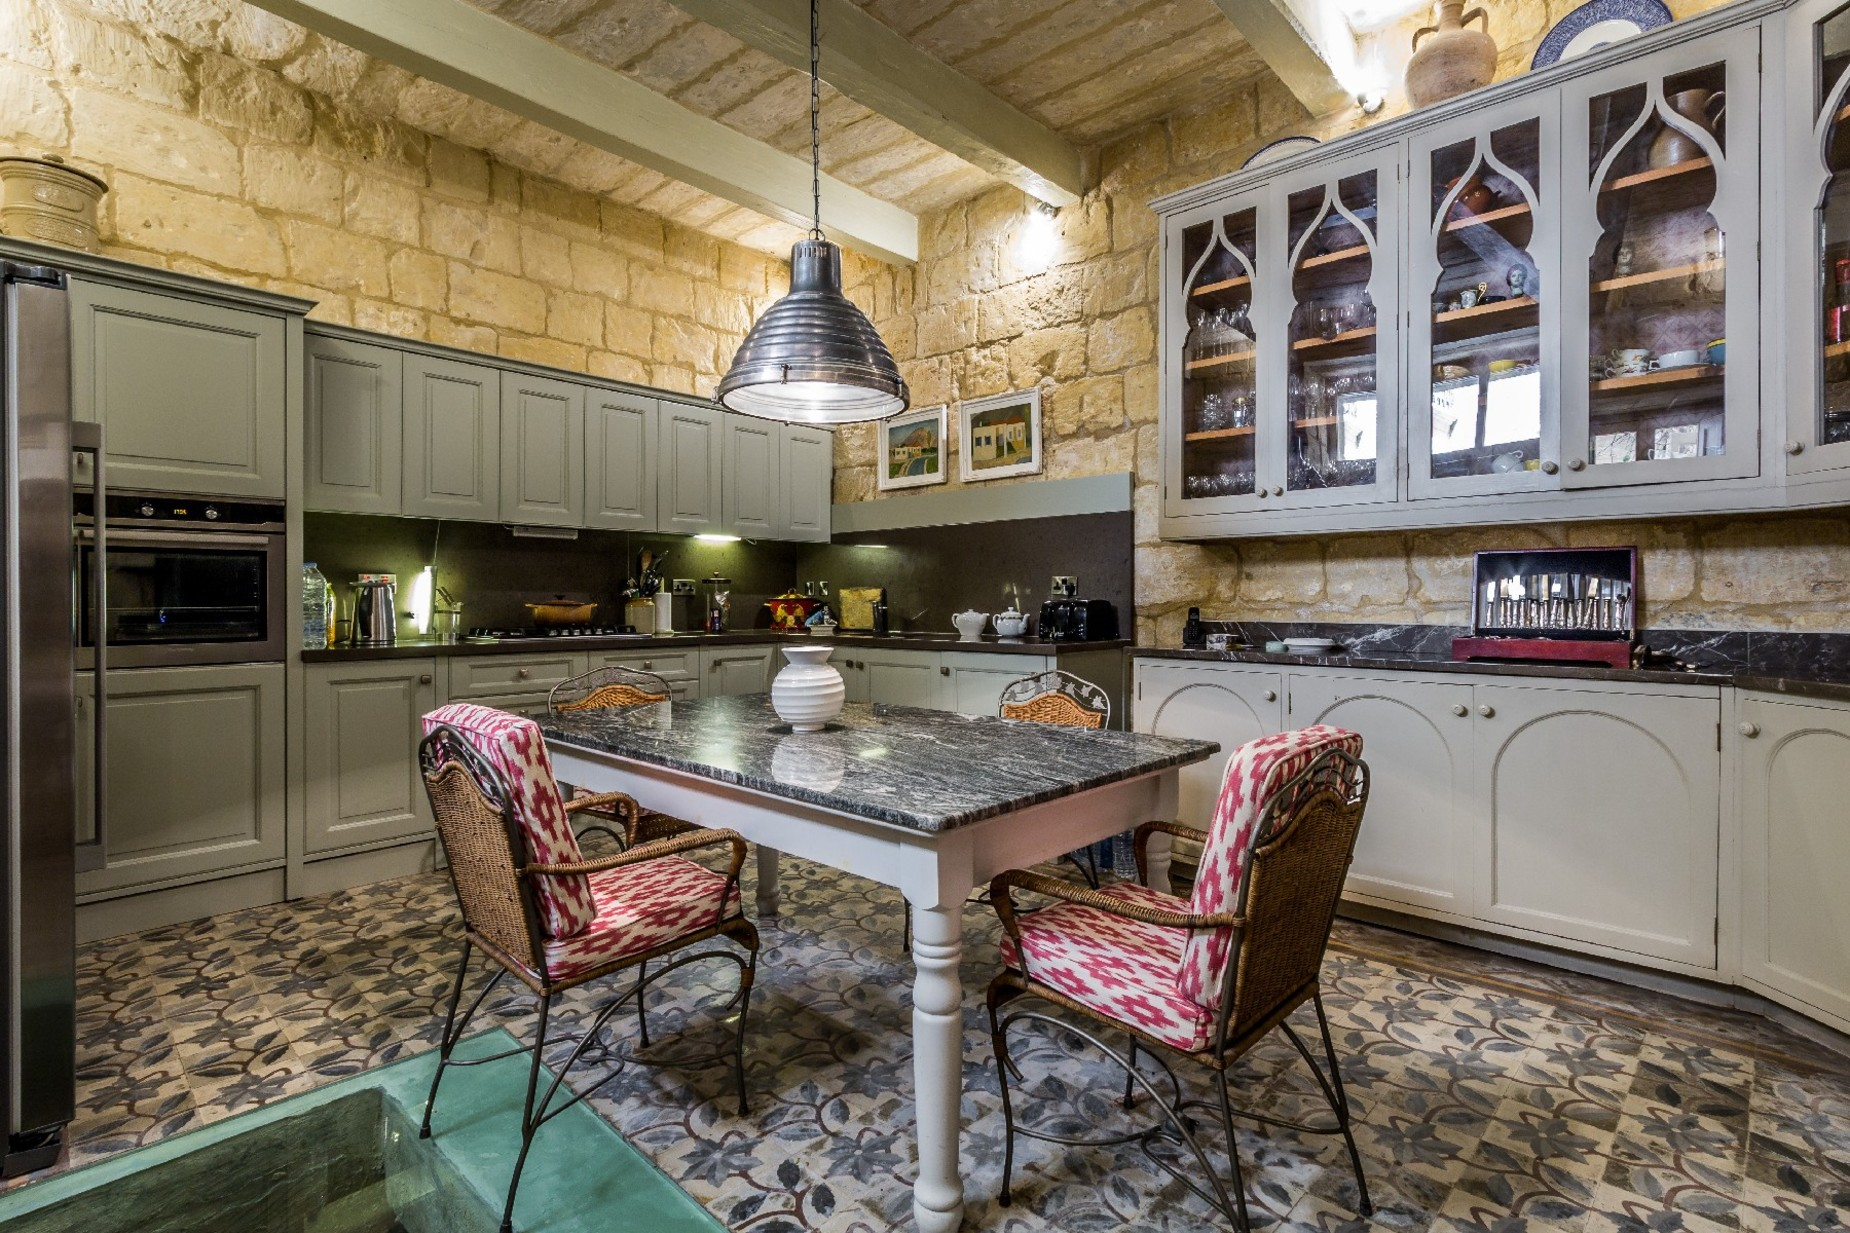 5 bed Town House For Rent in Cospicua, Cospicua - thumb 5